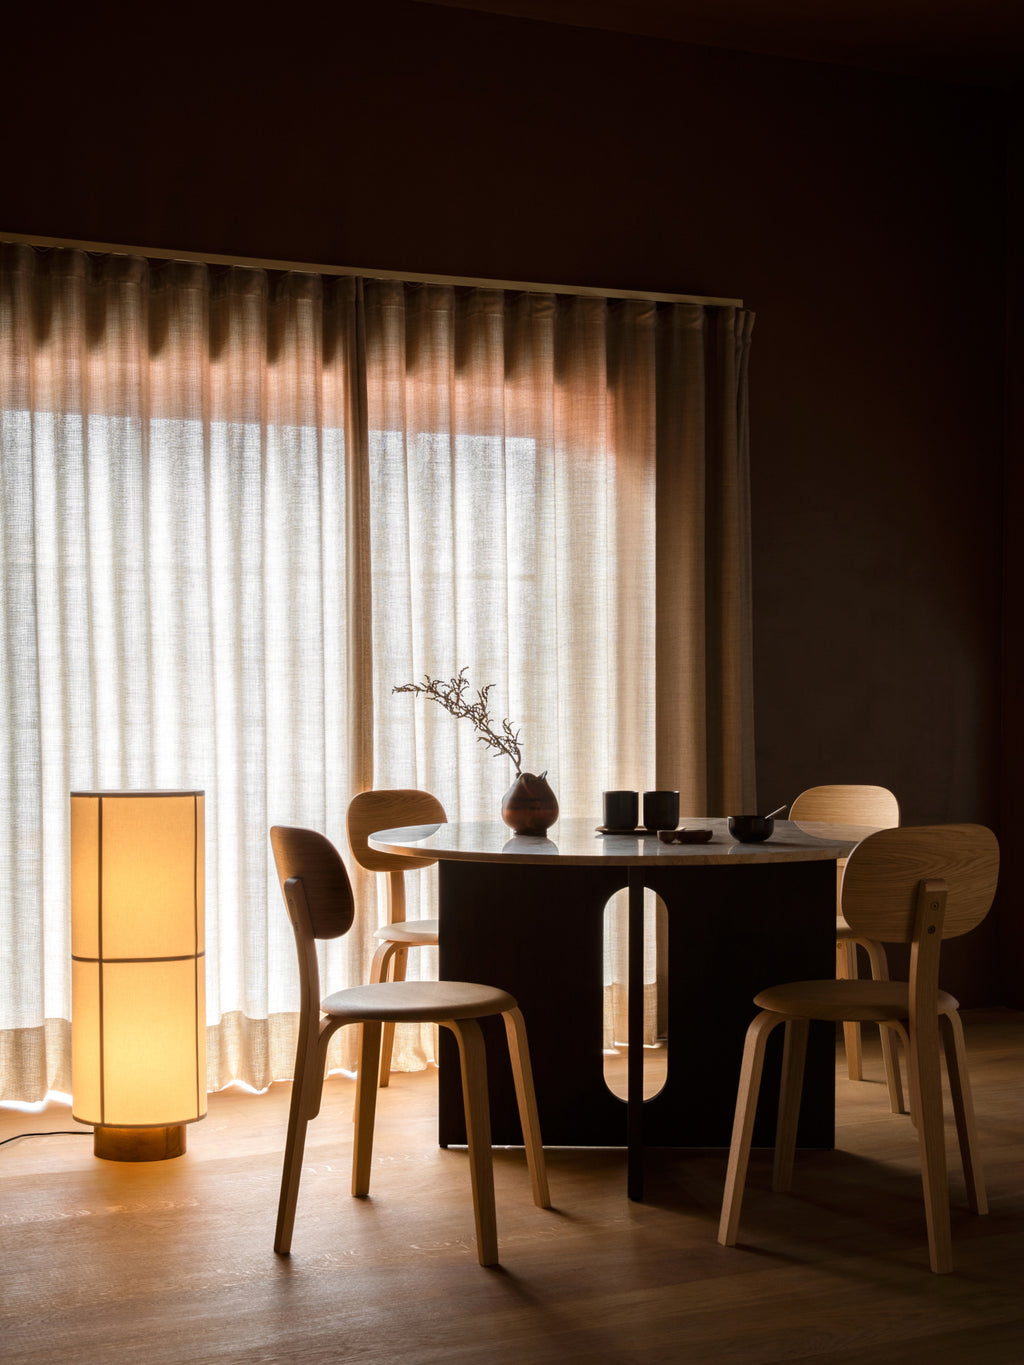 Hashira Floor Lamp By Norm Architects Ambient Lighting Menu Furniture Decor